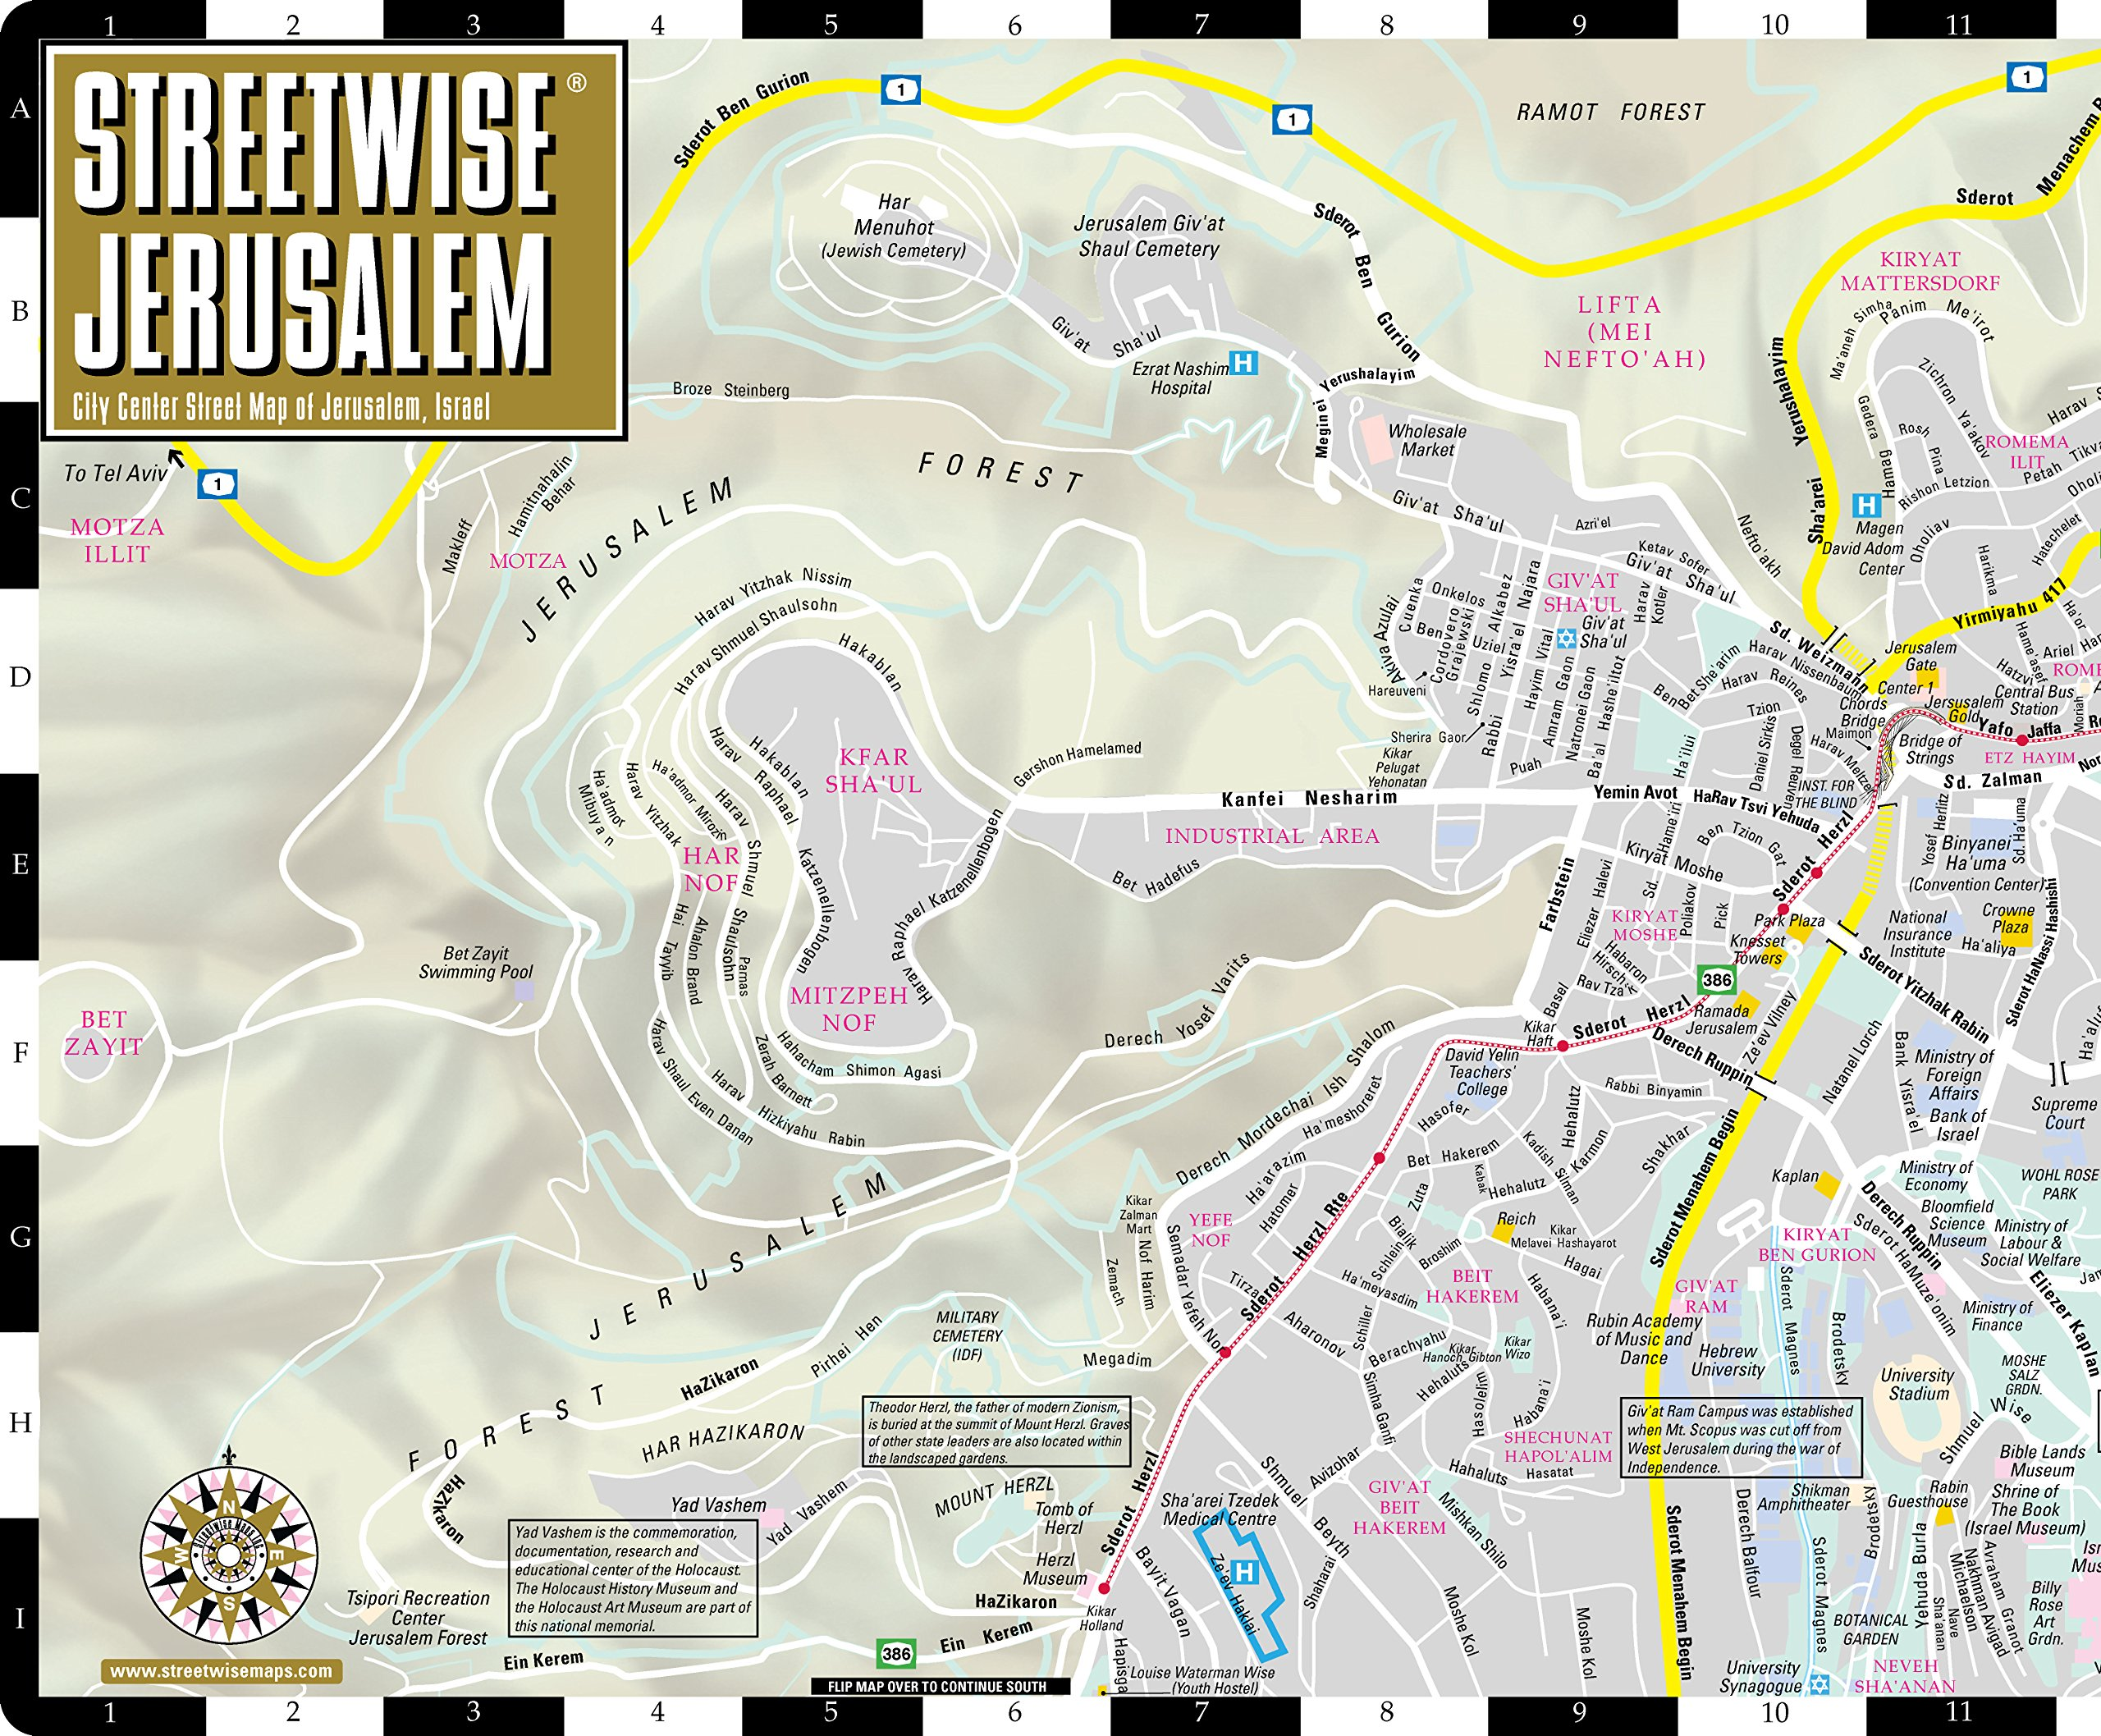 Streetwise jerusalem map laminated city center street map of streetwise jerusalem map laminated city center street map of jerusalem israel streetwise maps inc 9781886705234 books amazon gumiabroncs Choice Image